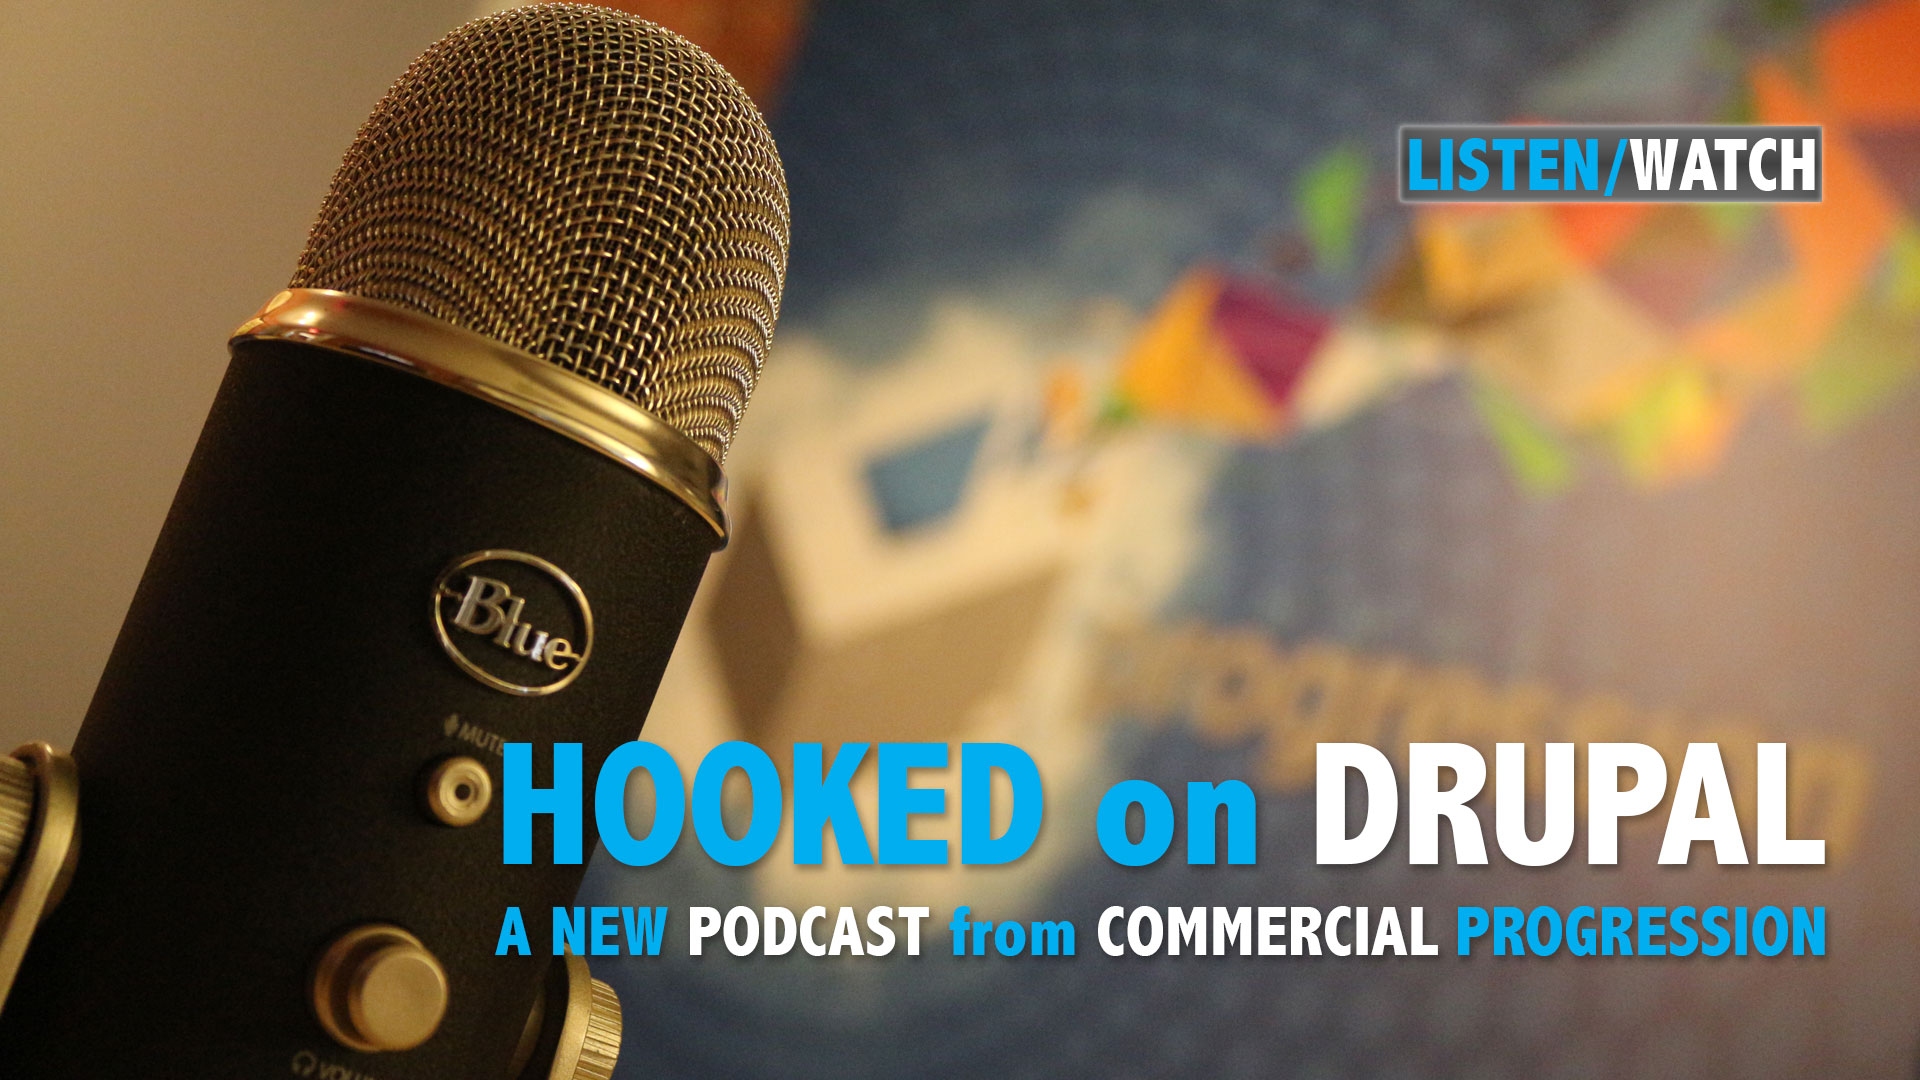 Hooked on Drupal Podcast